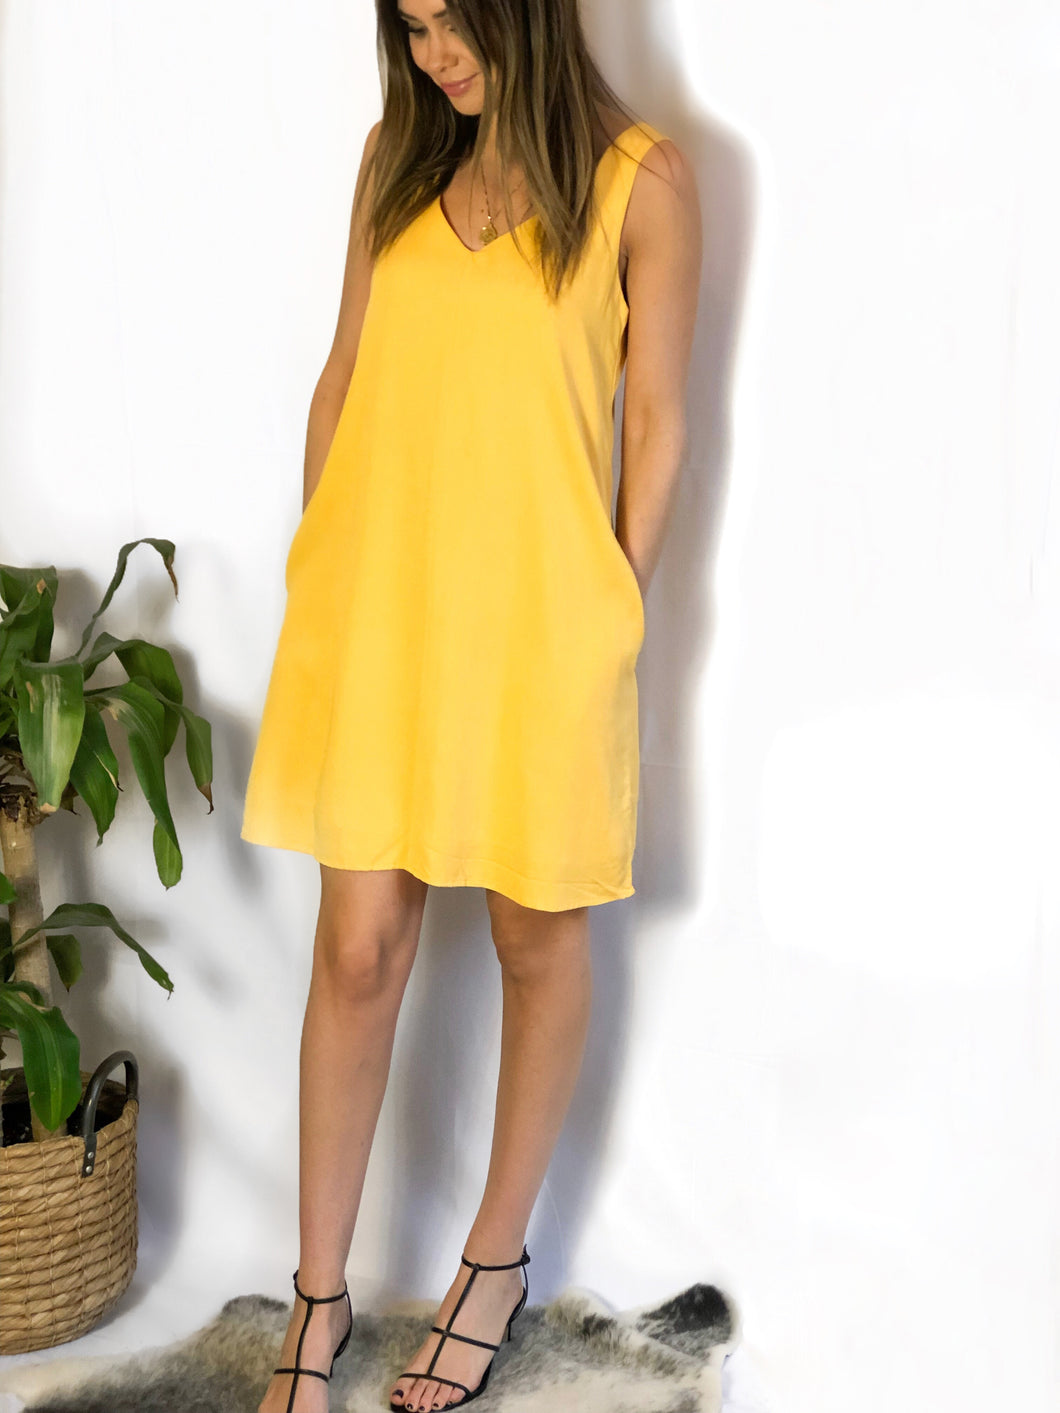 Spencer + Shaw - Sunshine Swing Dress